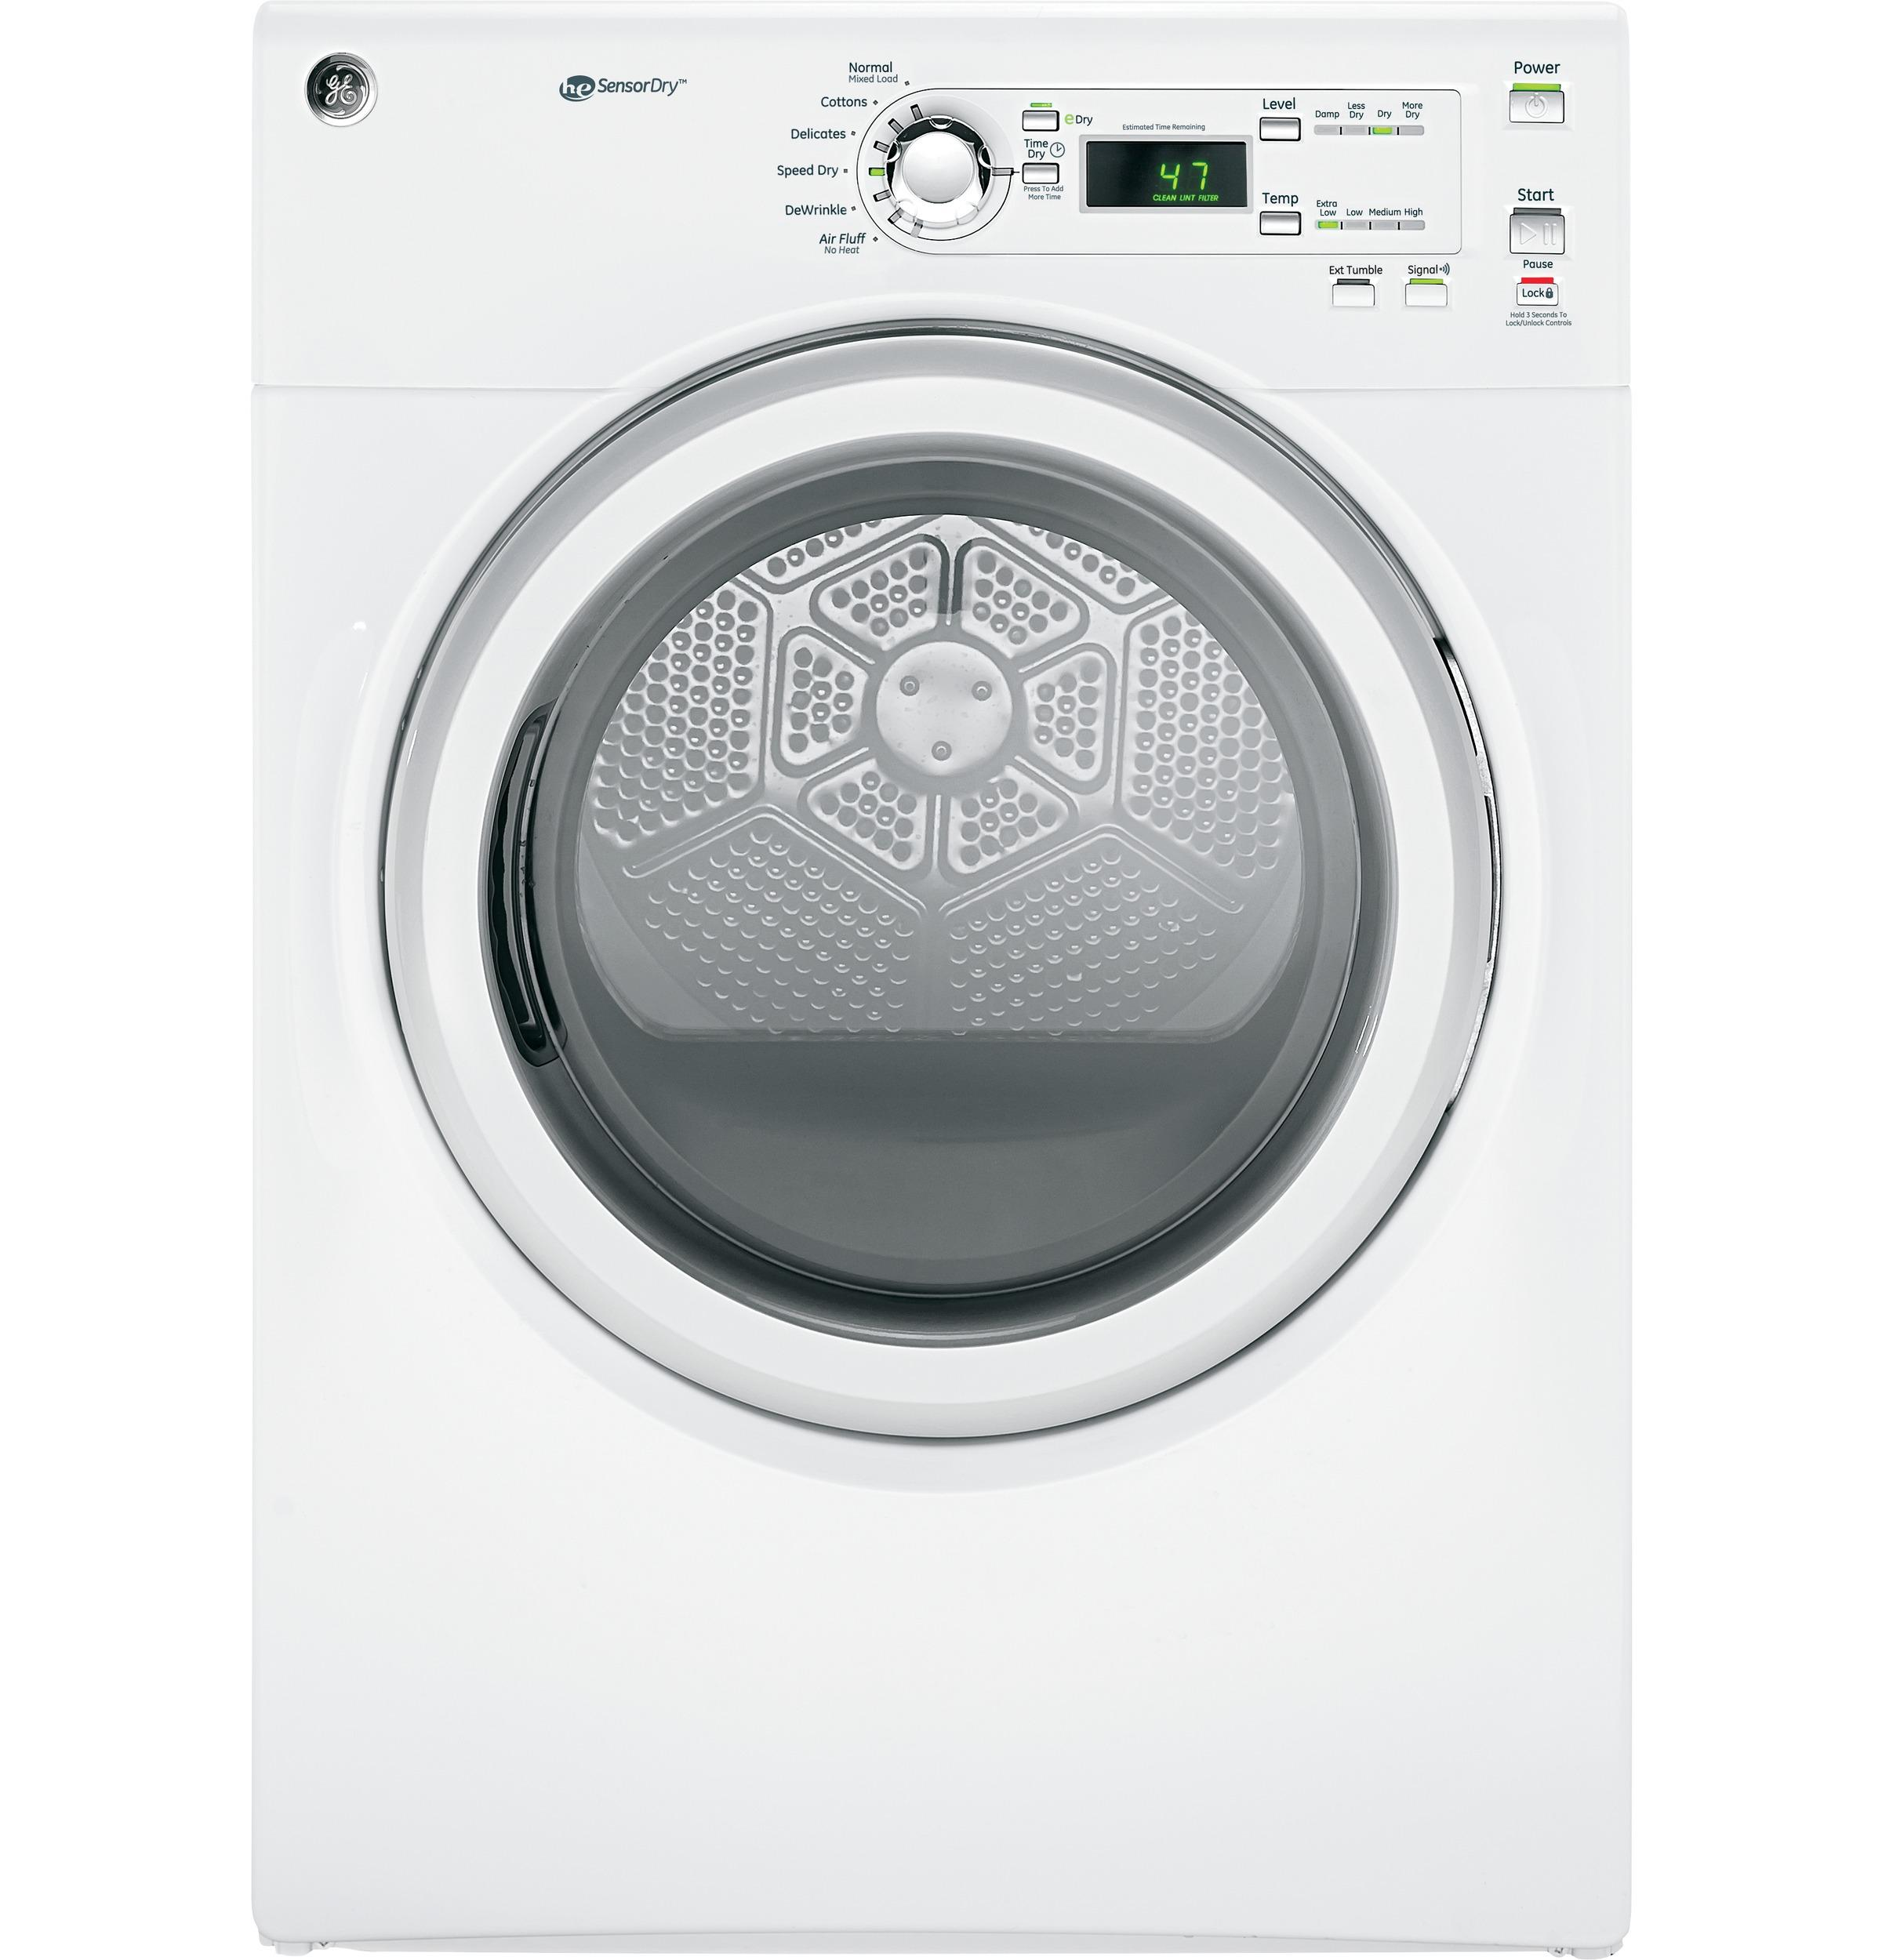 GE(R) 7.0 Cu. Ft. capacity Dura Drum electric Dryer